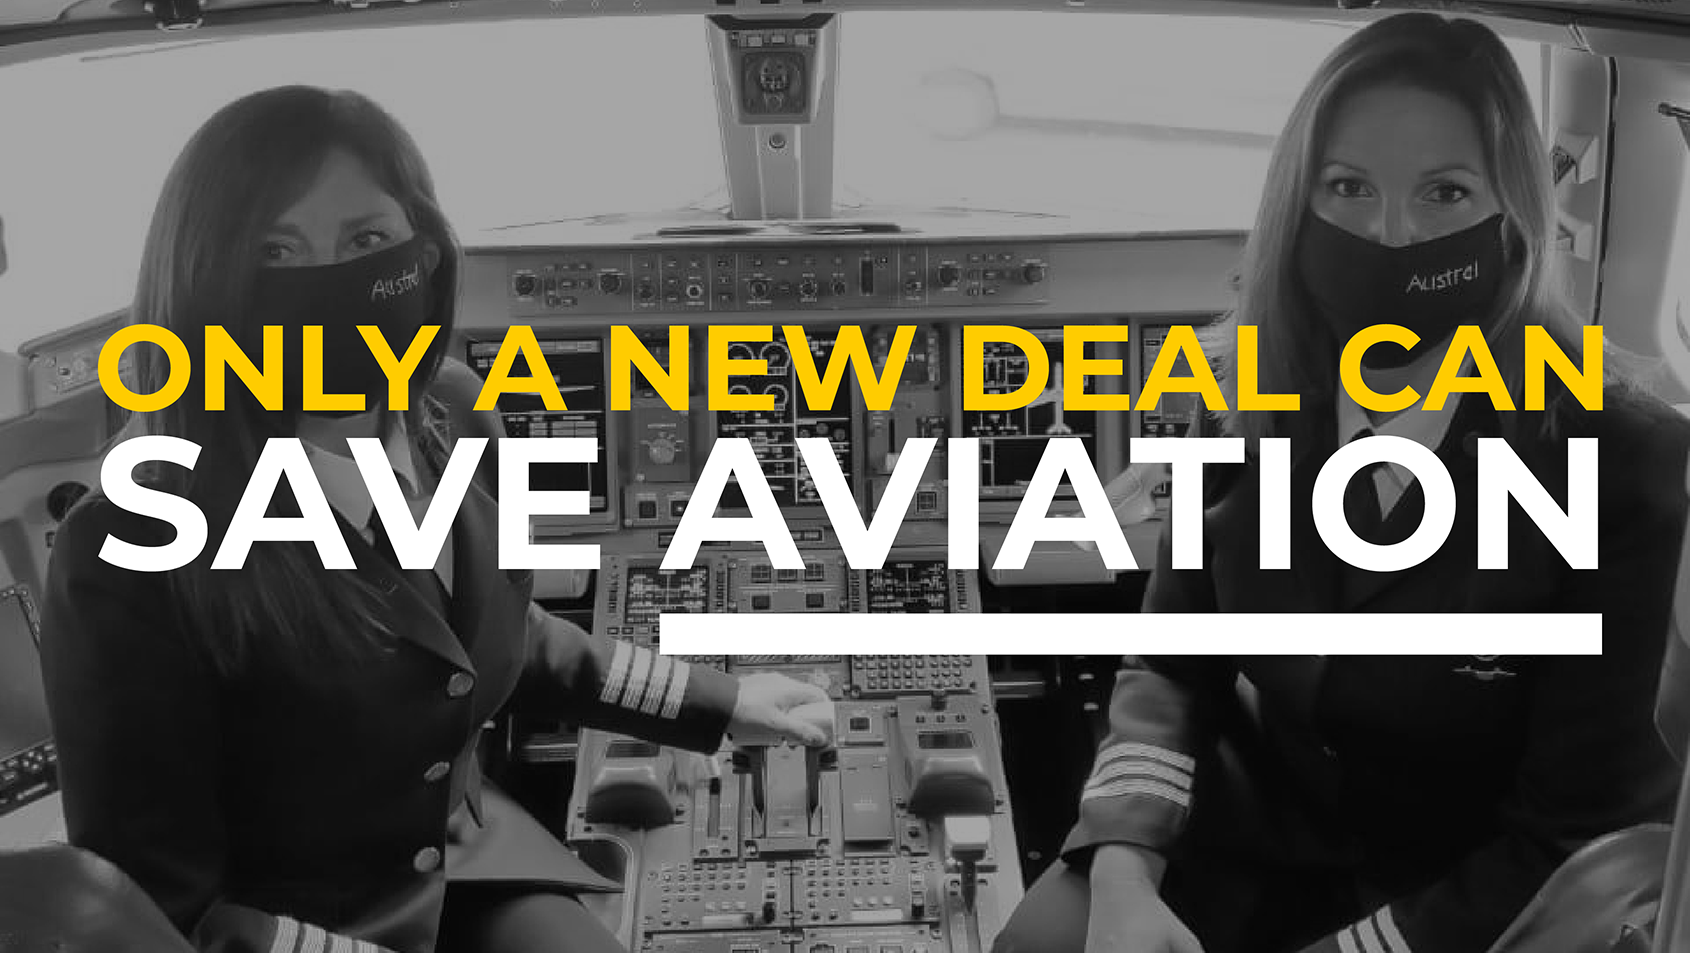 Only a new deal can save aviation